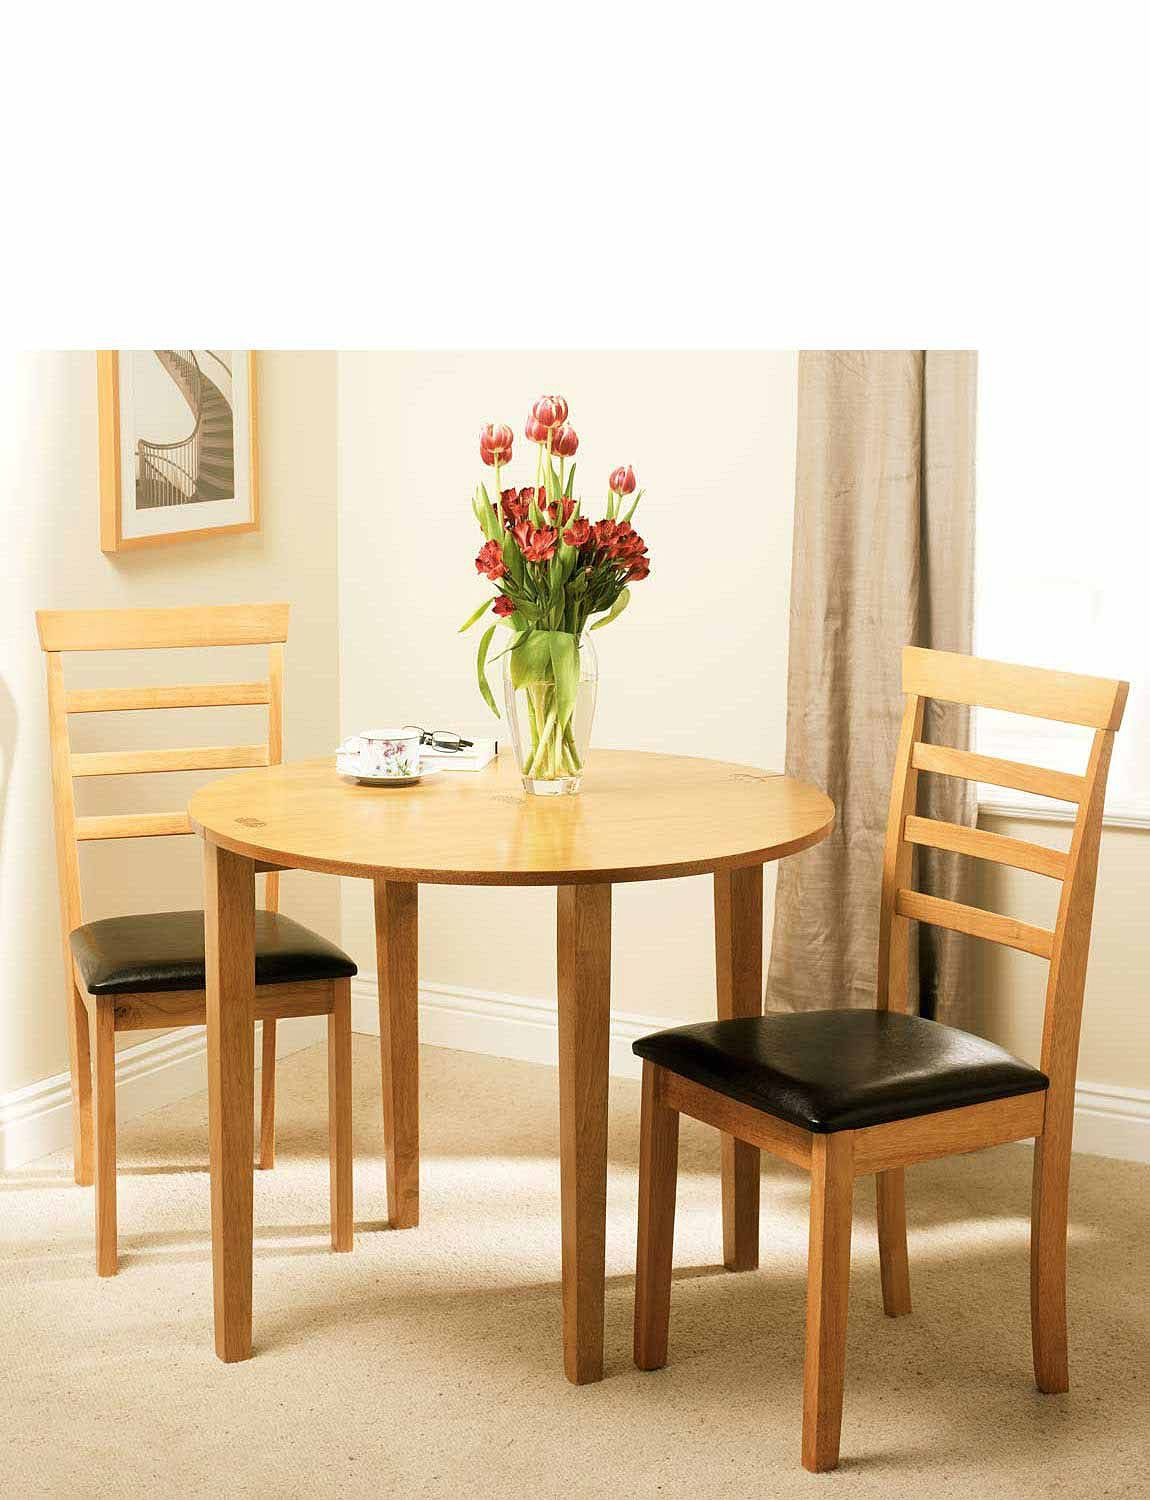 Half Moon Extending Table And 2 Chair Set Chums